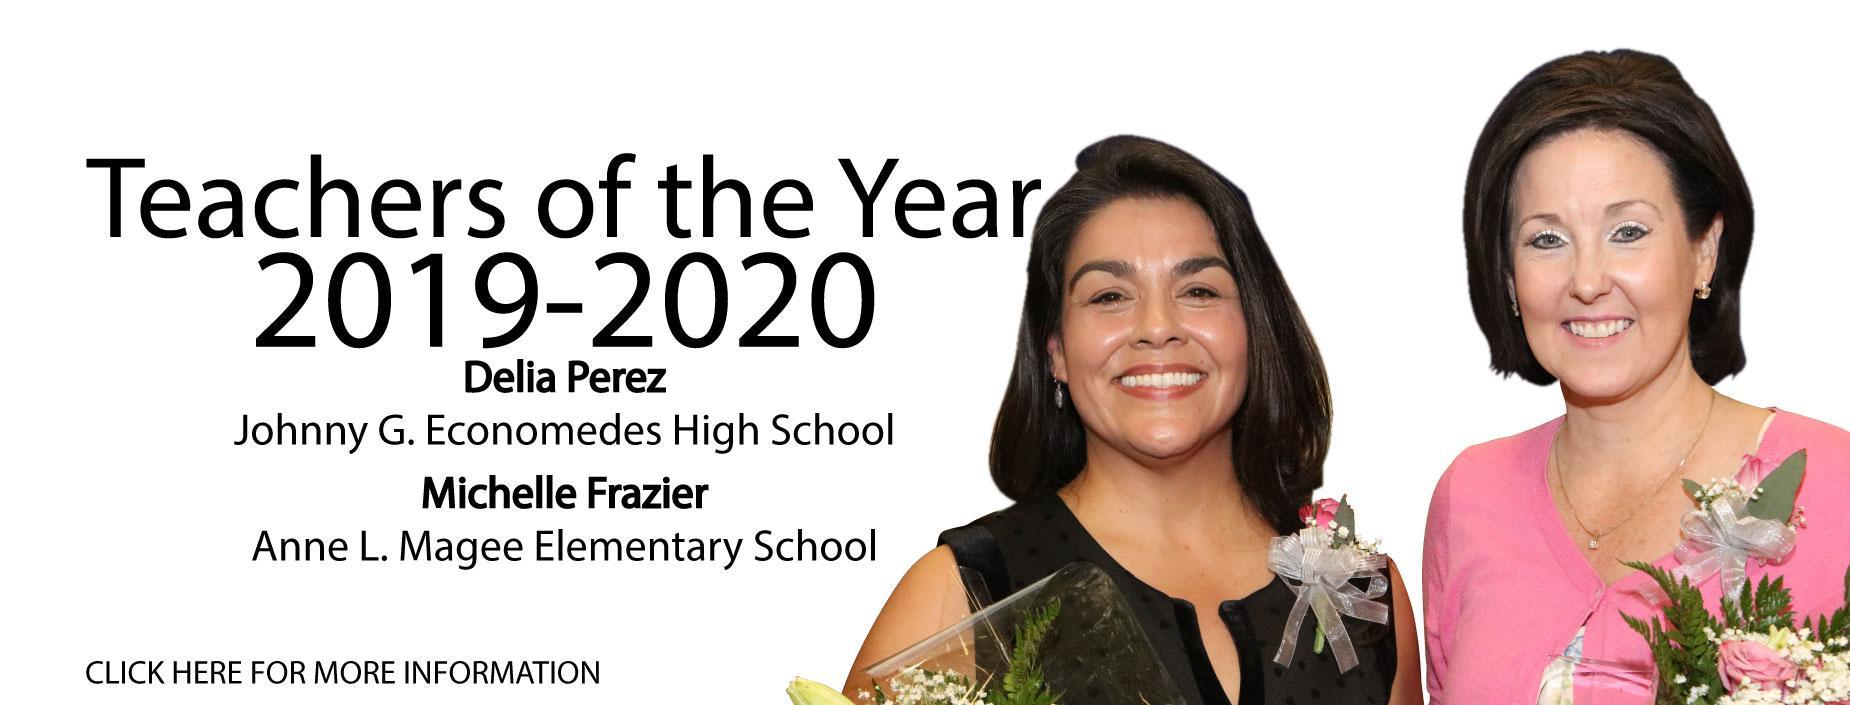 2019-2020 Teachers of the Year